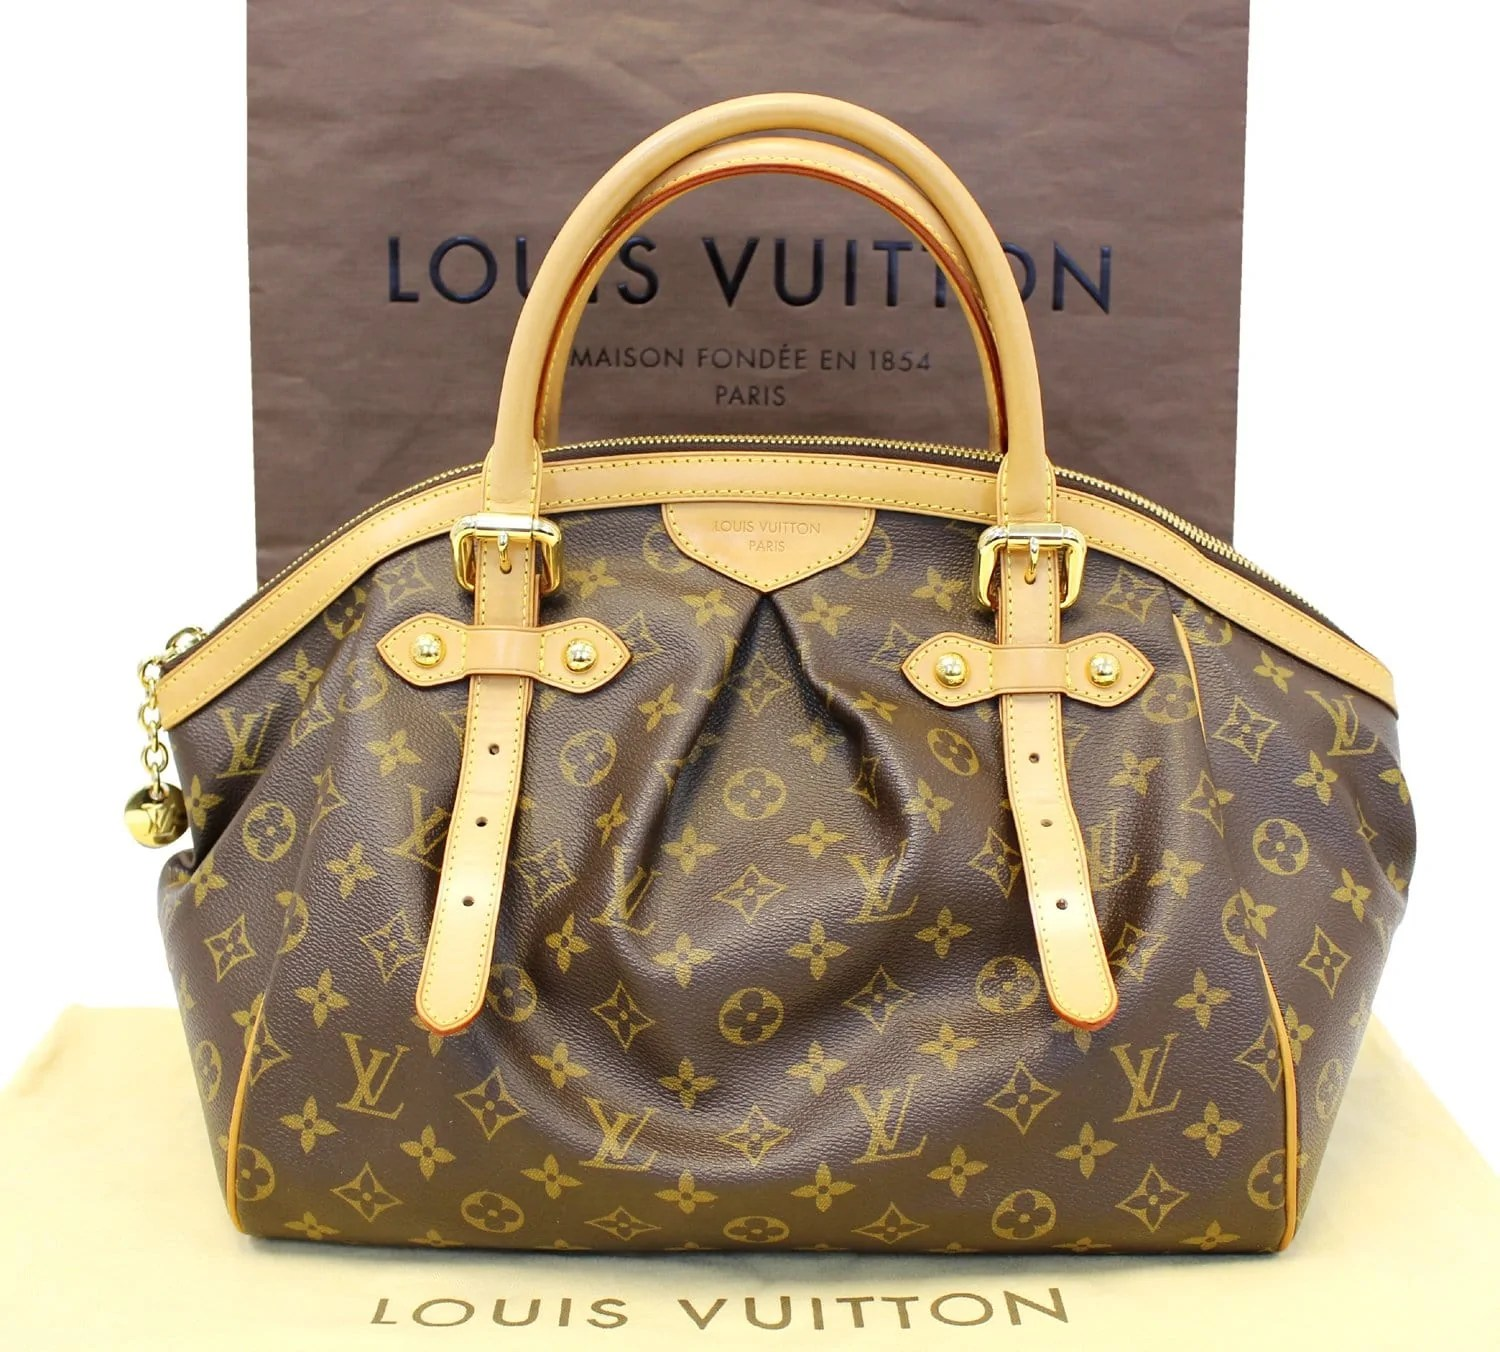 Tivoli Gm Authentic Louis Vuitton Monogram Tivoli Gm Brown Tote Shoulder Bag E38